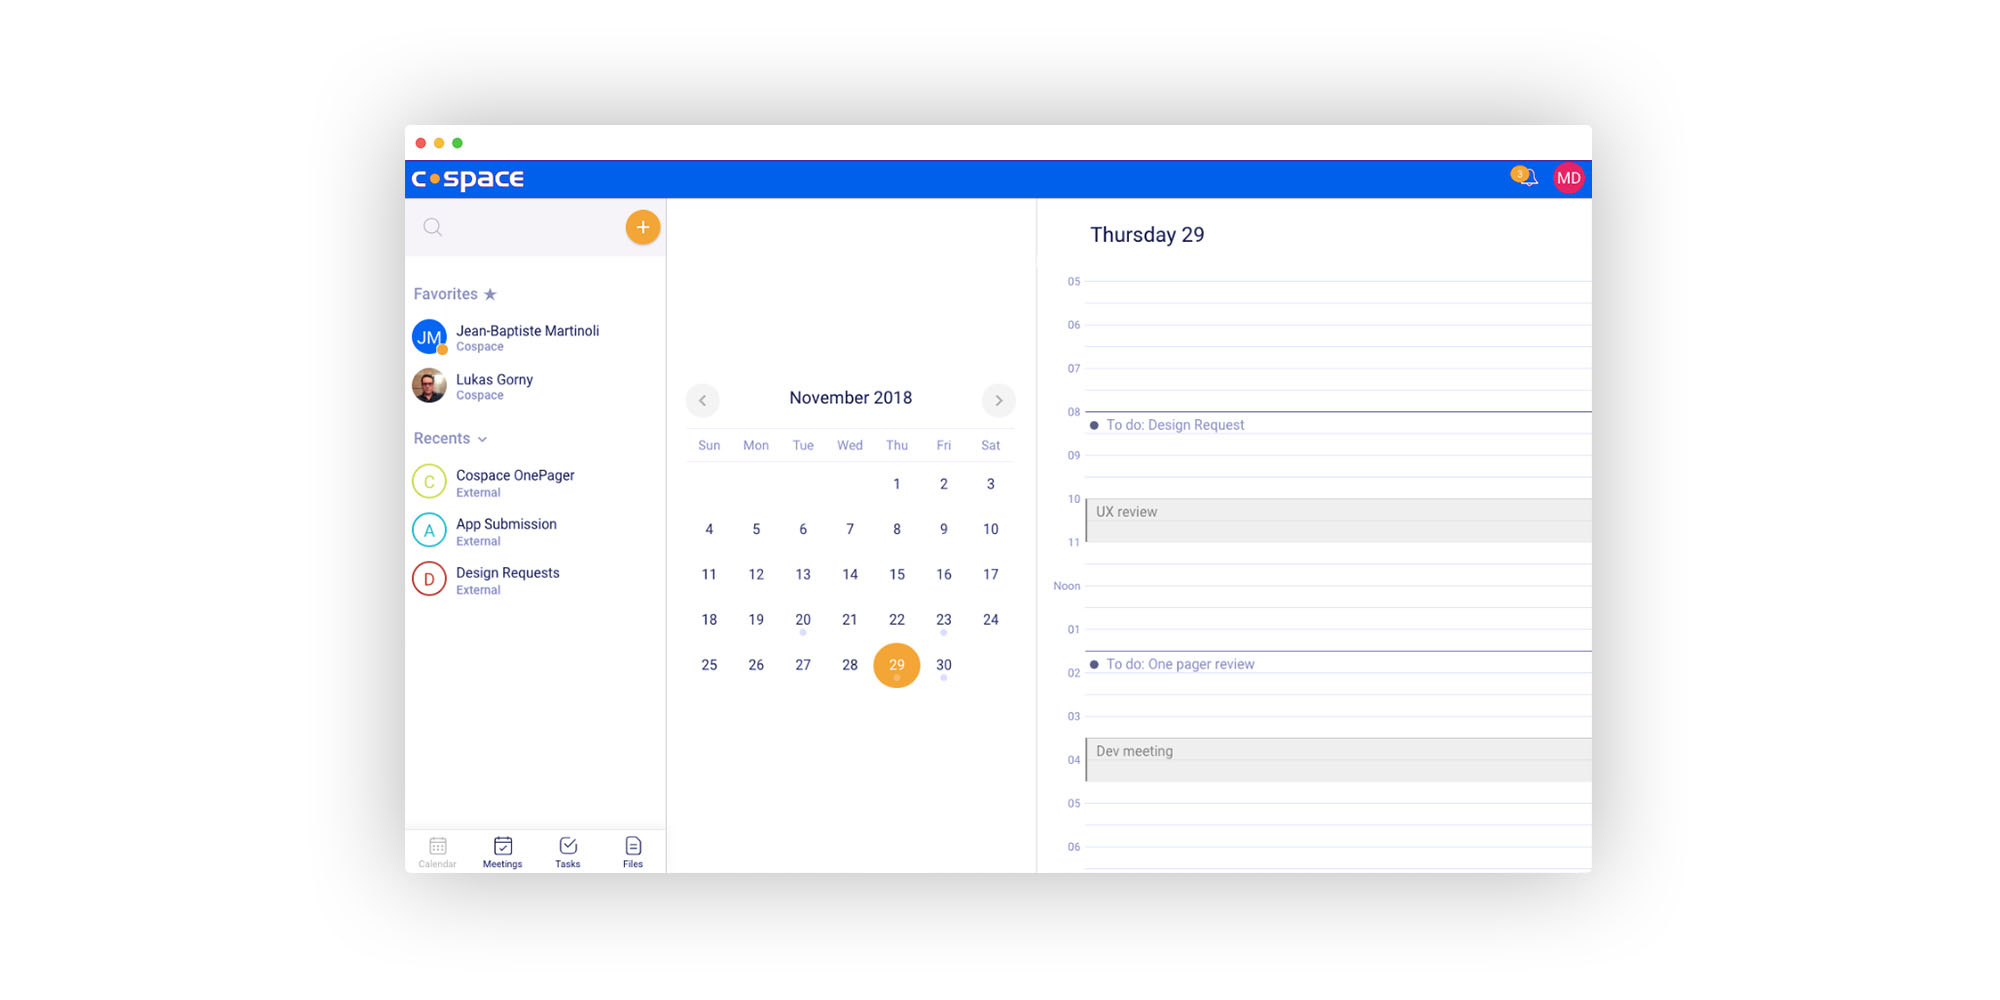 Cospace Calendar Feature for Remote Teams